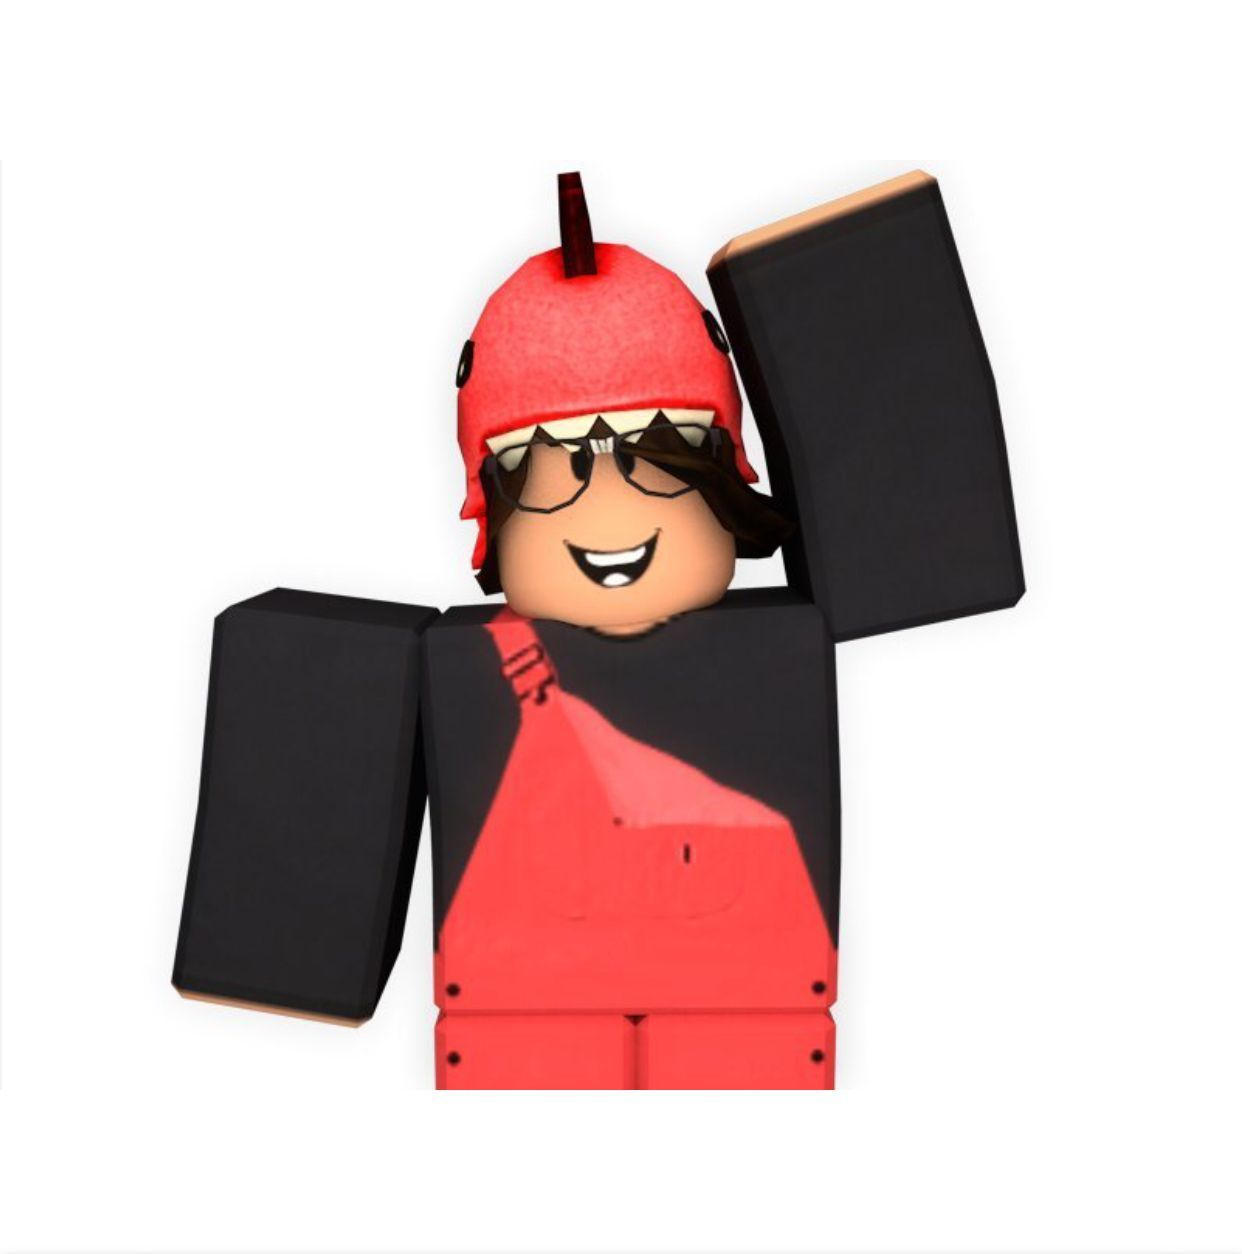 If You Are Looking For Aesthetic Boy Roblox Wallpaper You Ve Come To The Right Place We Have Colle Aesthetic Boy Cute Profile Pictures Girl Cartoon Characters